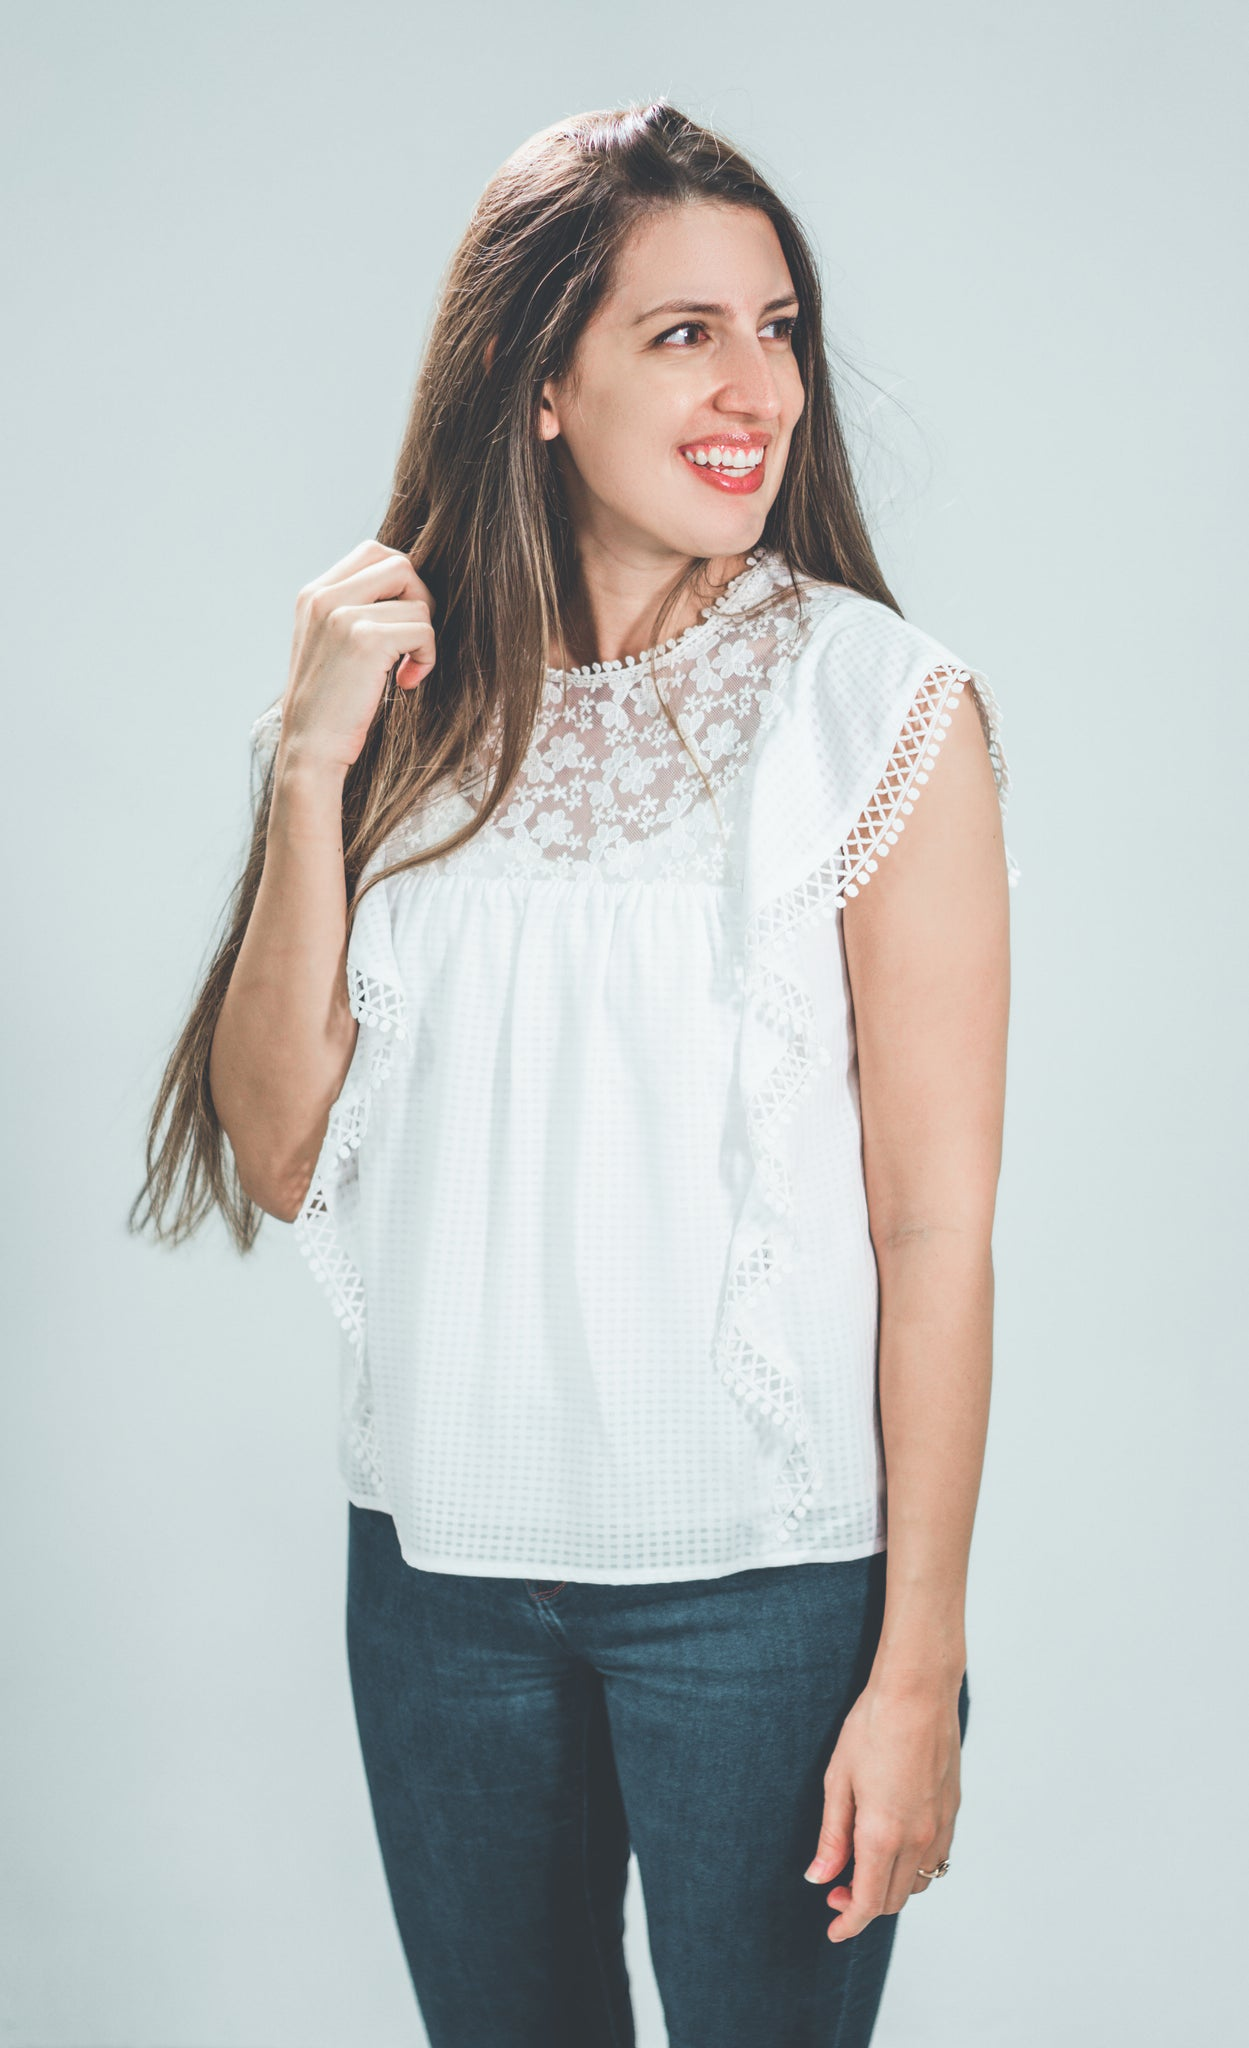 Nursing Floral Lace Blouse